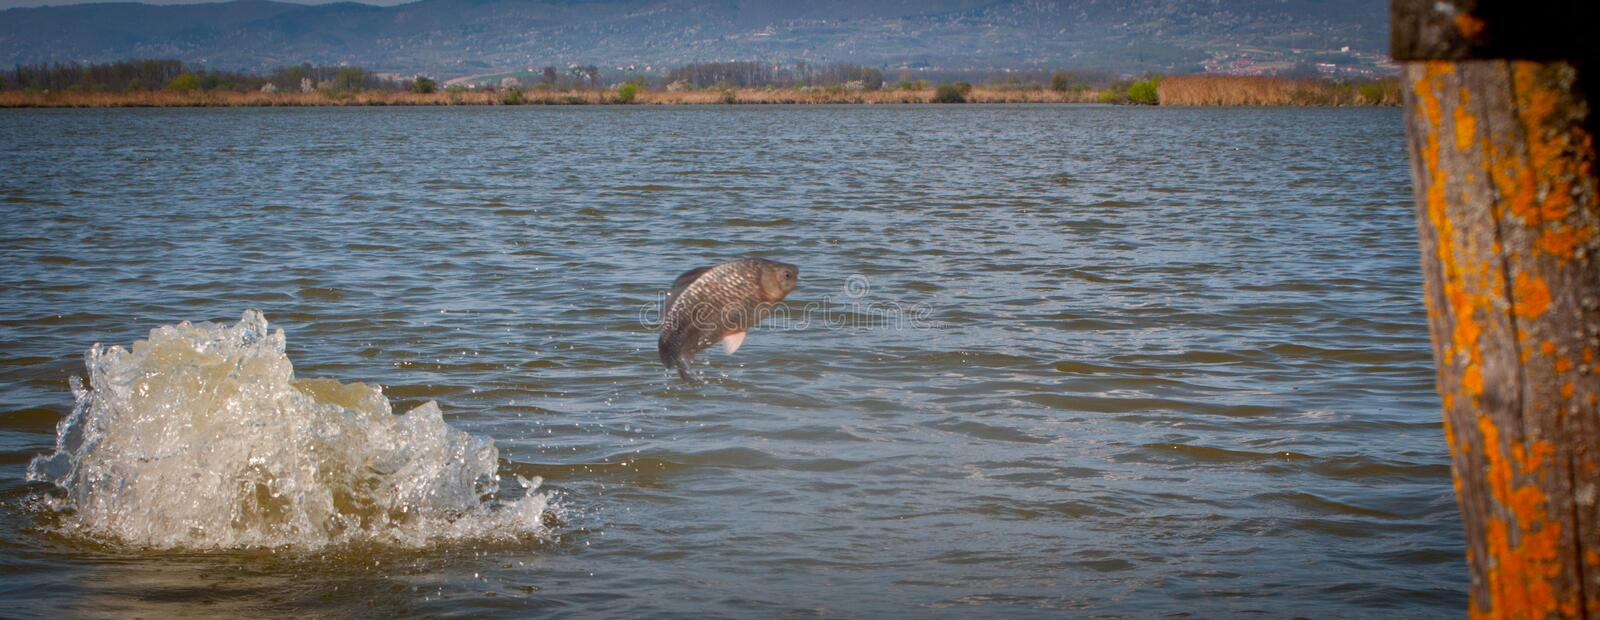 Popping fish out of the water, fish,carp stock images